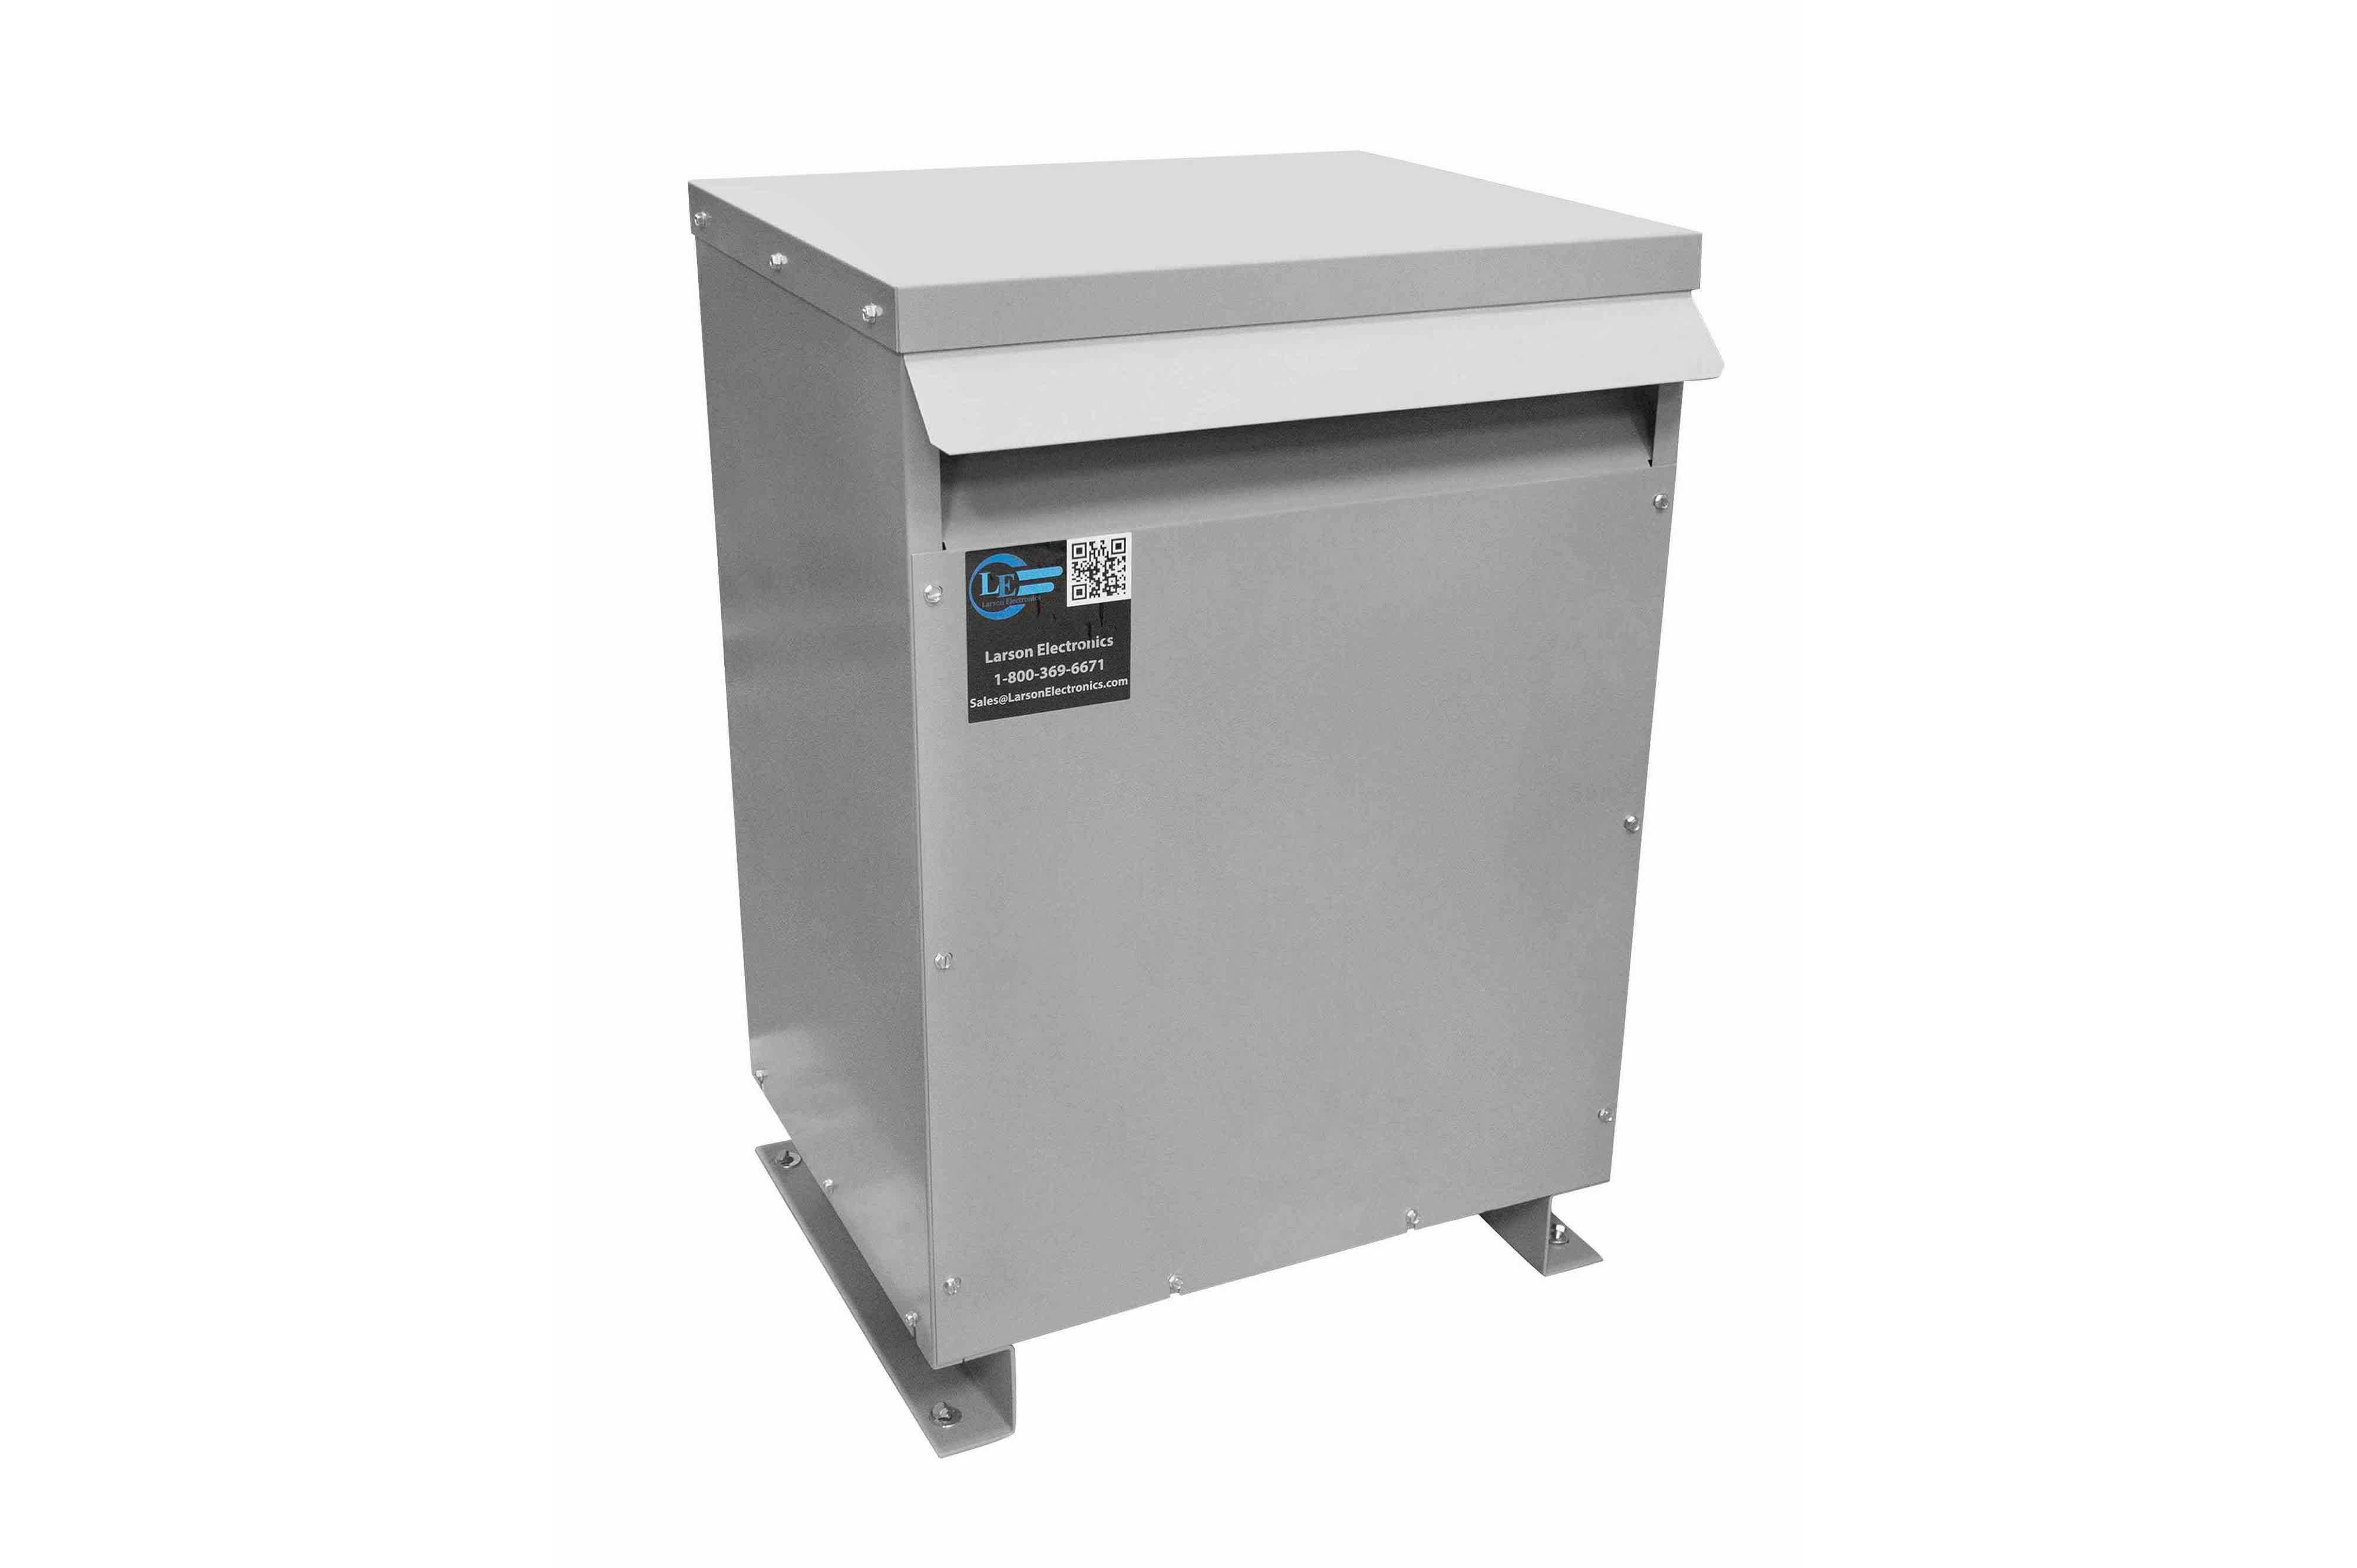 275 kVA 3PH Isolation Transformer, 208V Wye Primary, 400Y/231 Wye-N Secondary, N3R, Ventilated, 60 Hz